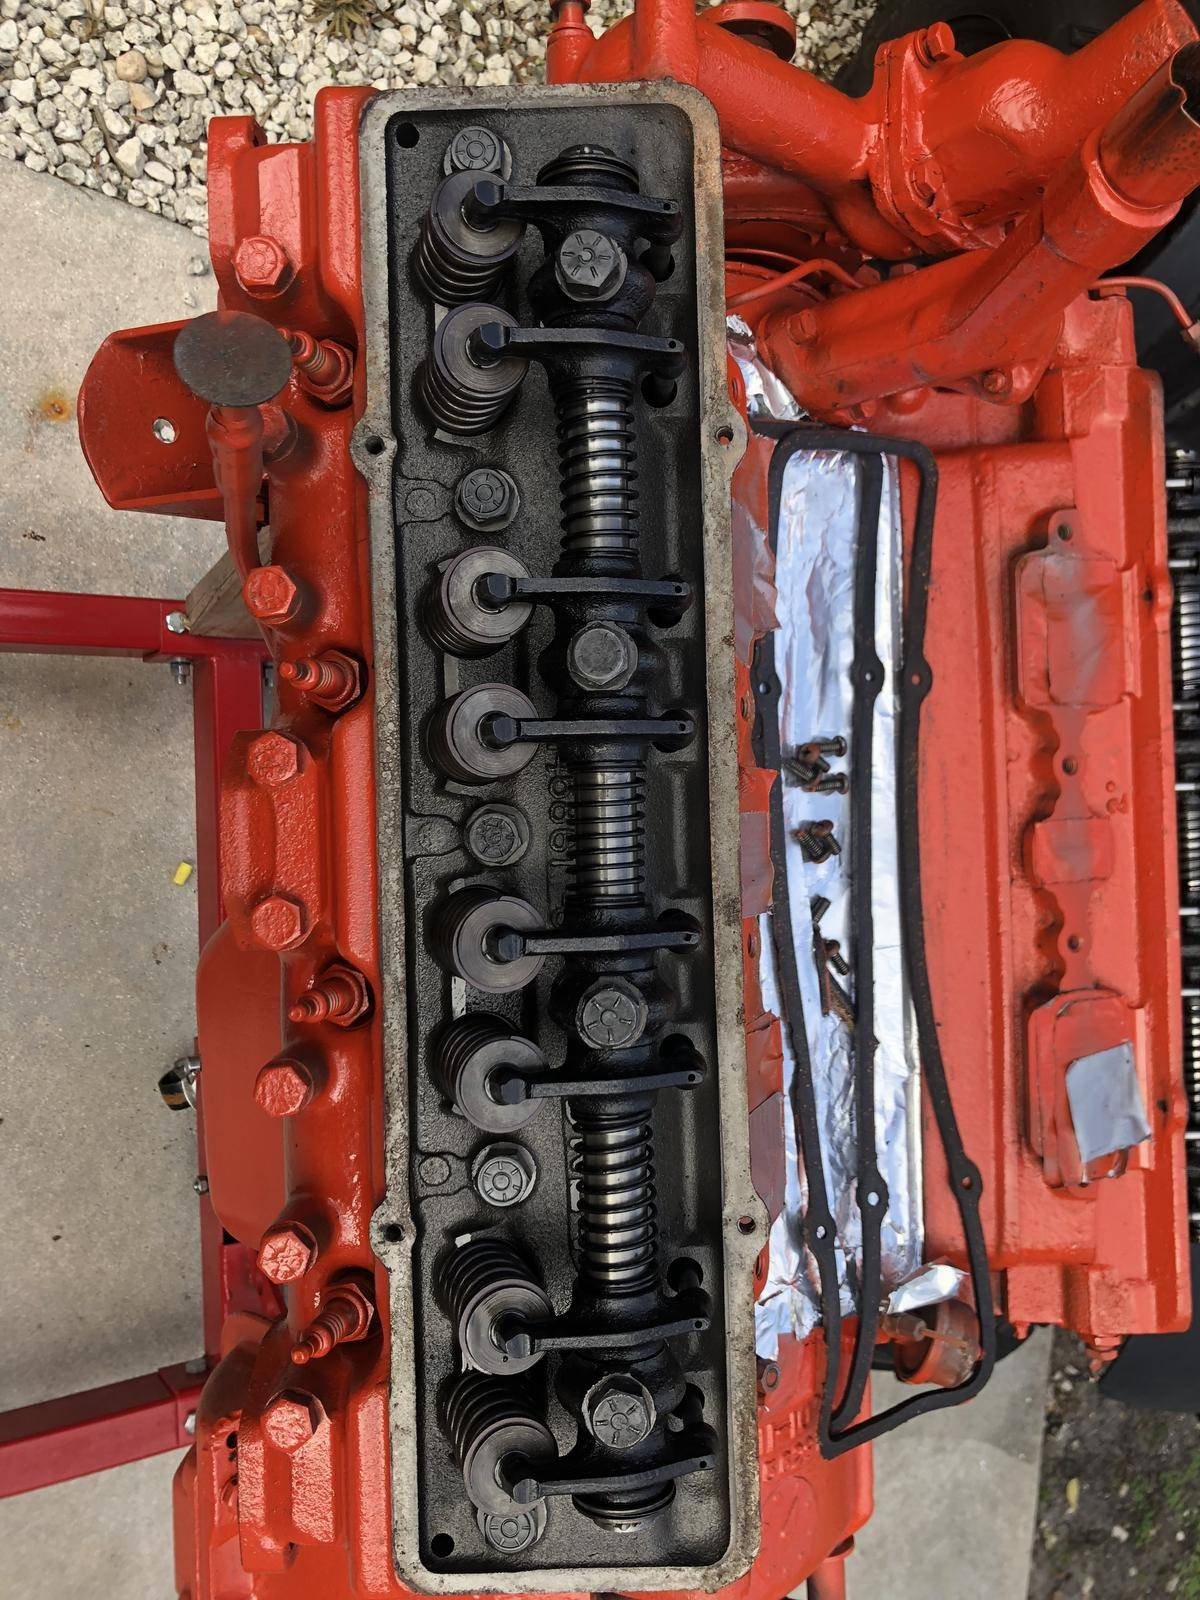 hight resolution of image 1 of 9 1952 cadillac 331 engine